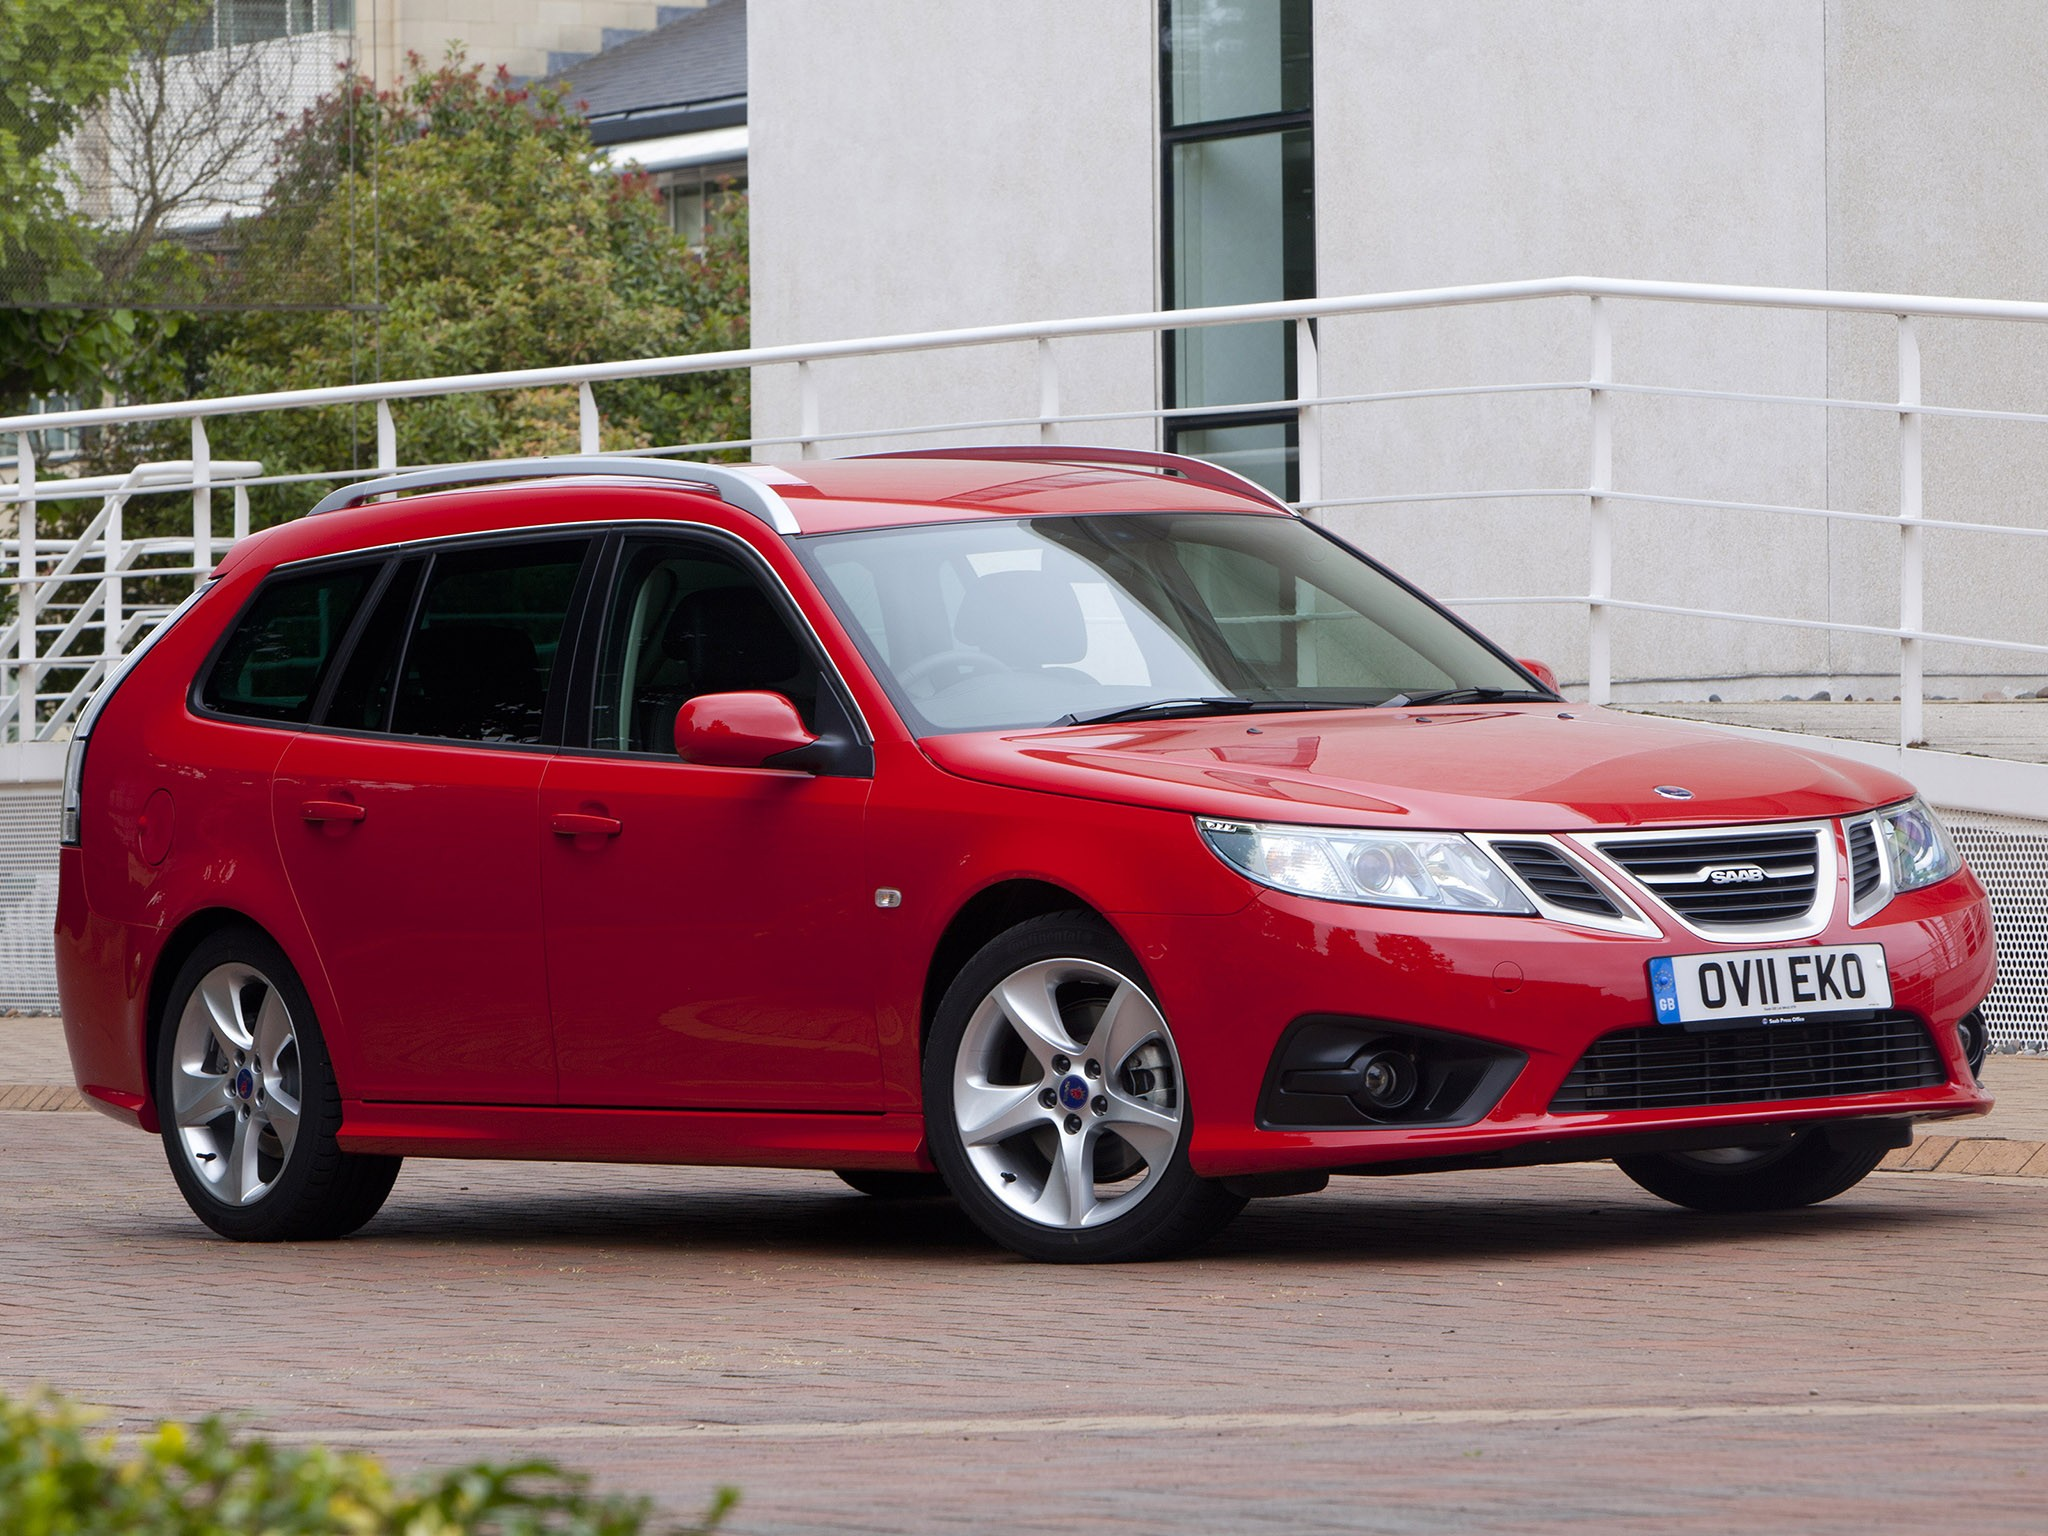 2011 Saab 9-3 Griffin Sport combi UK